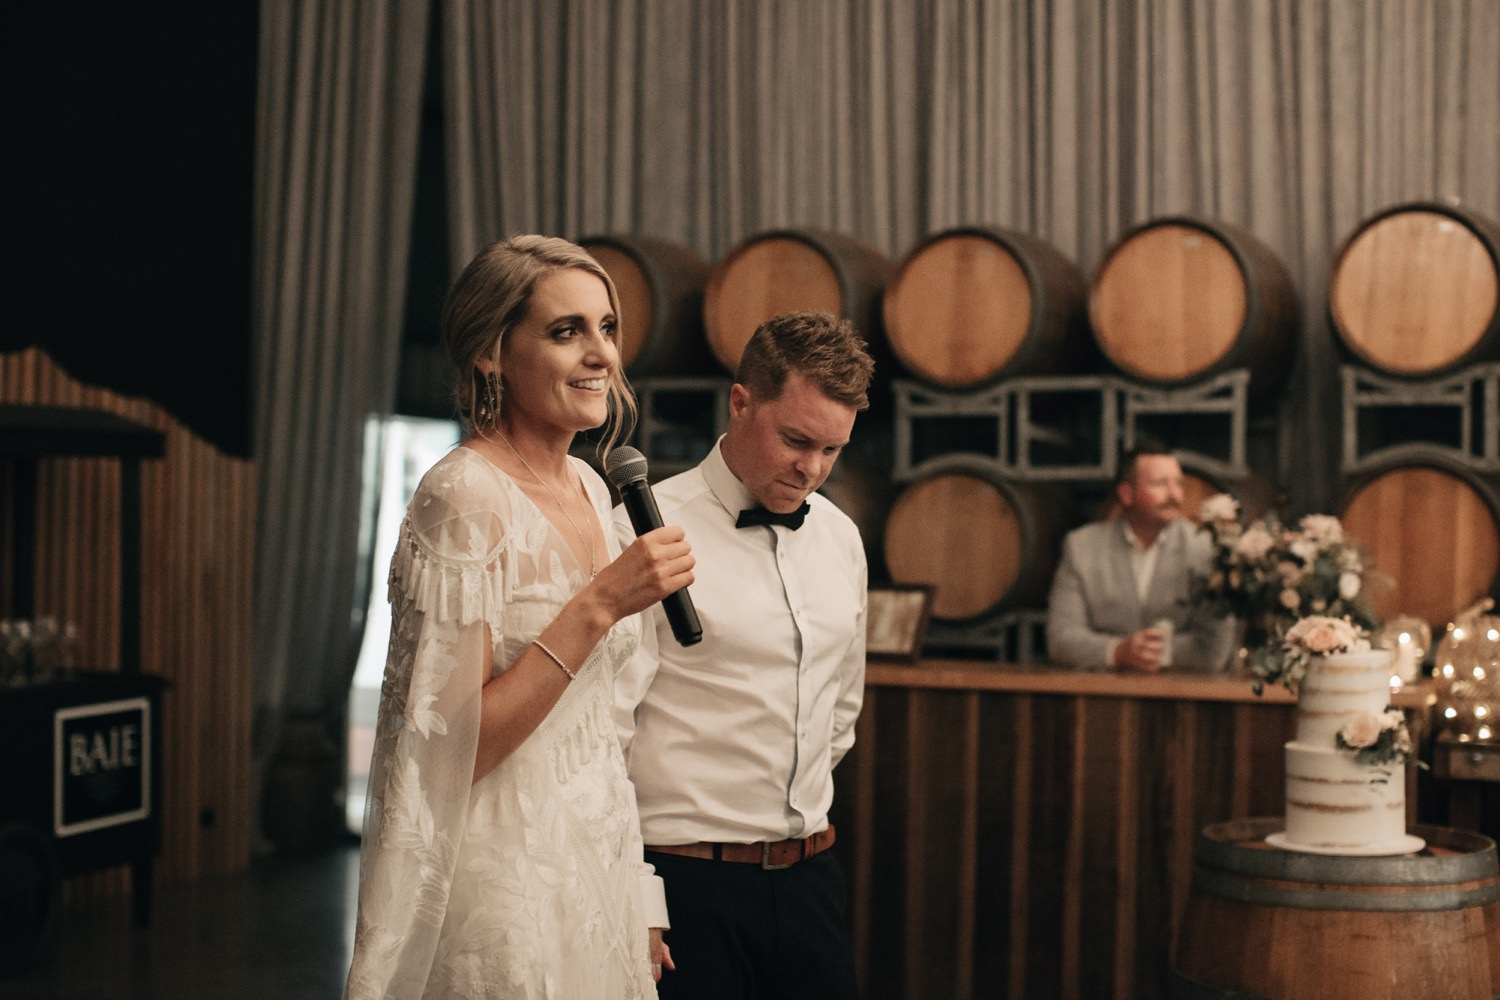 relaxed-wedding-photographer-melbourne-bellarine-peninsula-baie-winery_0096.jpg